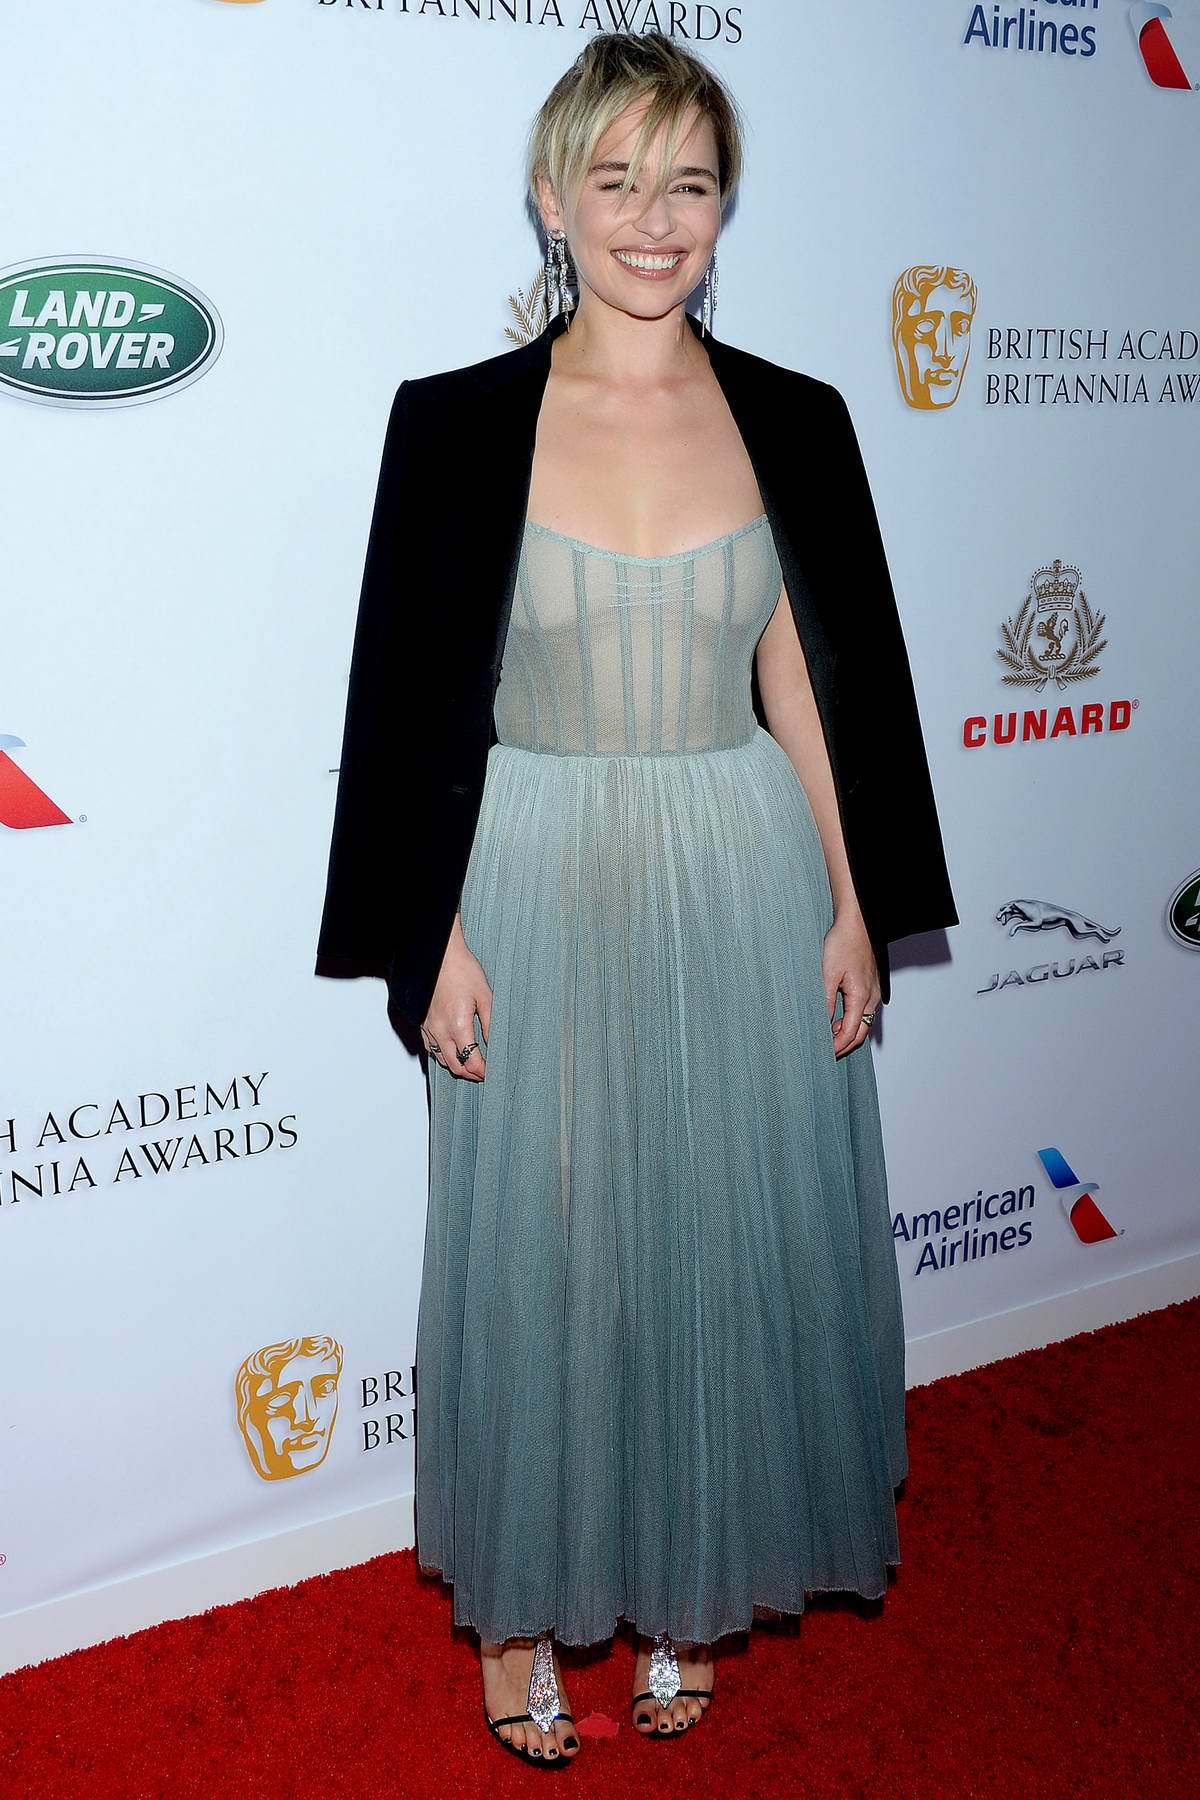 Emilia Clarke attends the British Academy Britannia Awards 2018 at The Beverly Hilton Hotel in Los Angeles